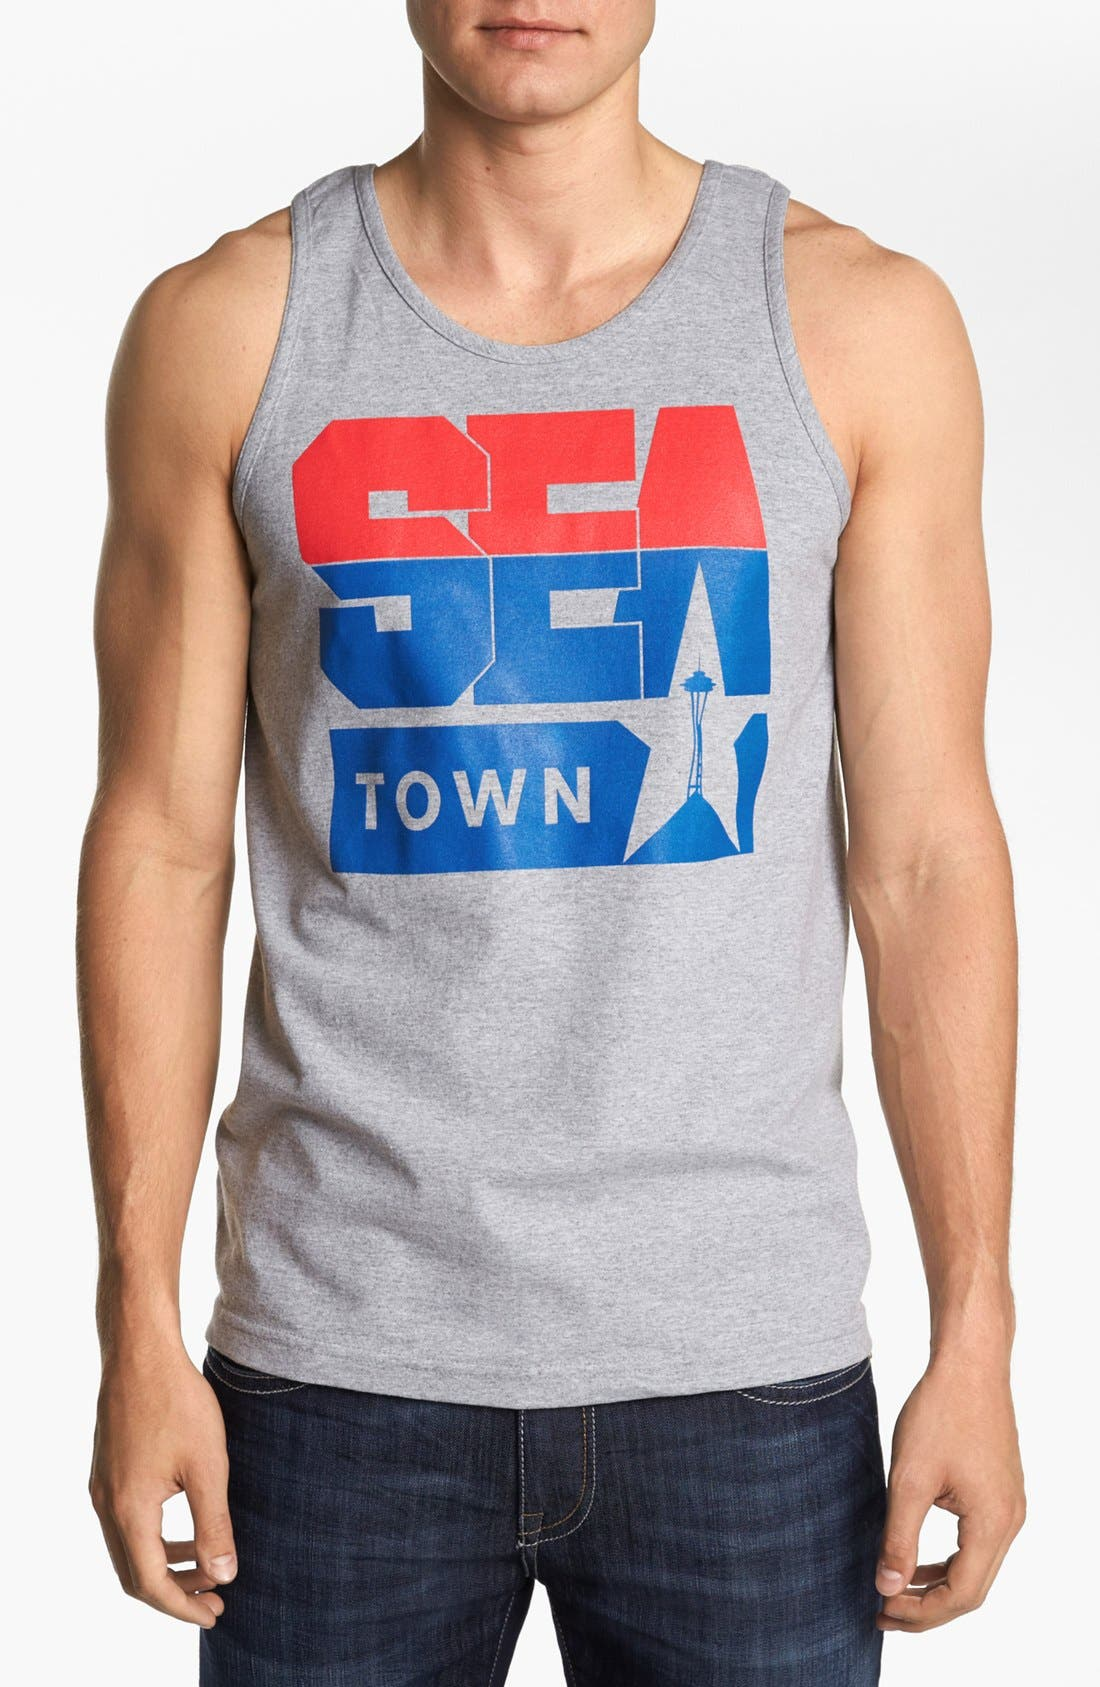 Main Image - Casual Industrees 'Seatown' Tank Top